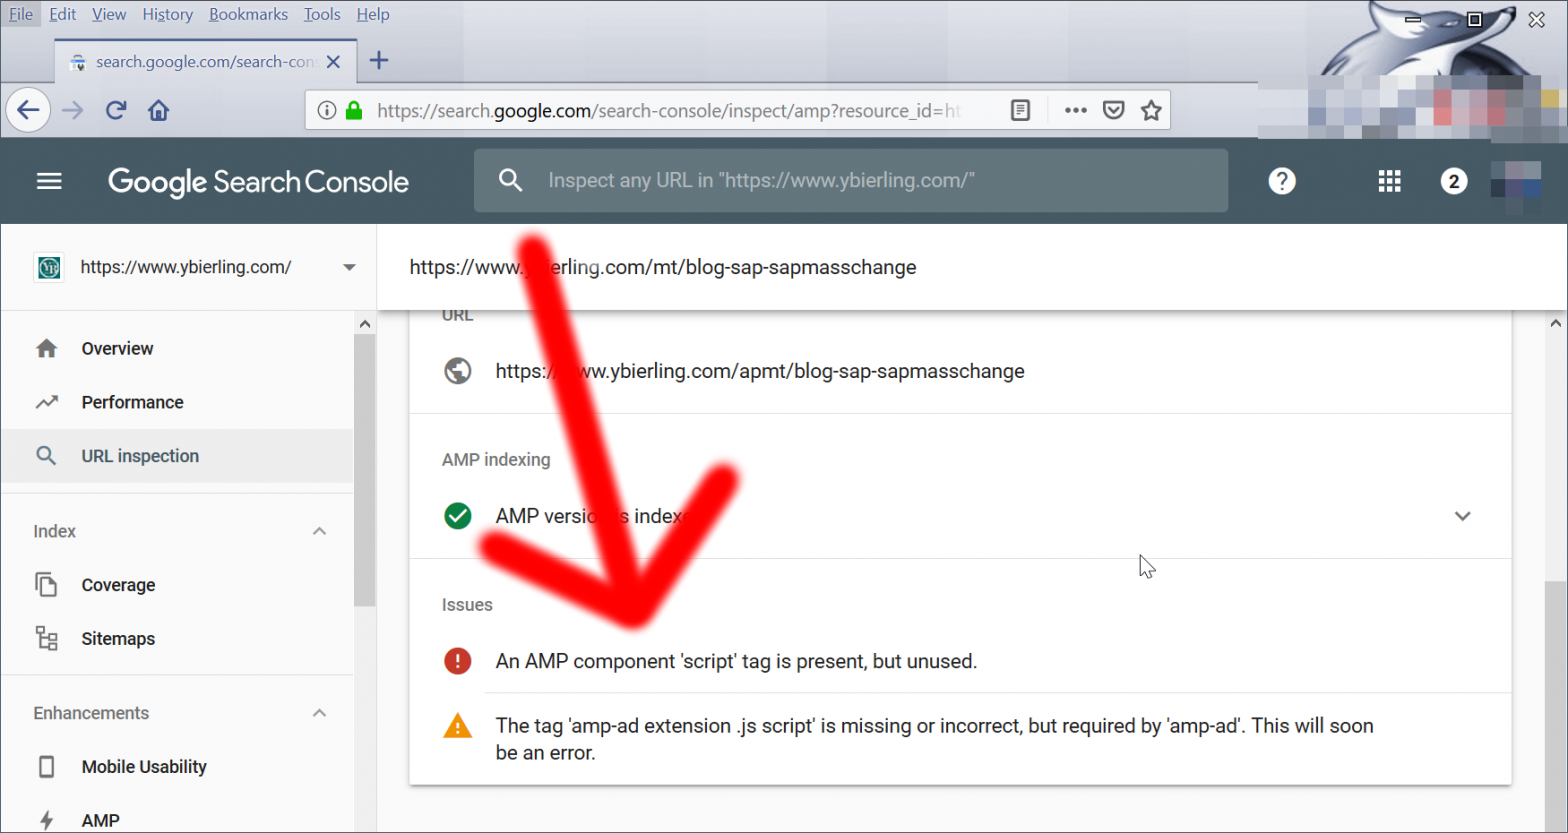 Solve the tag 'amp-ad extension .js script' is missing